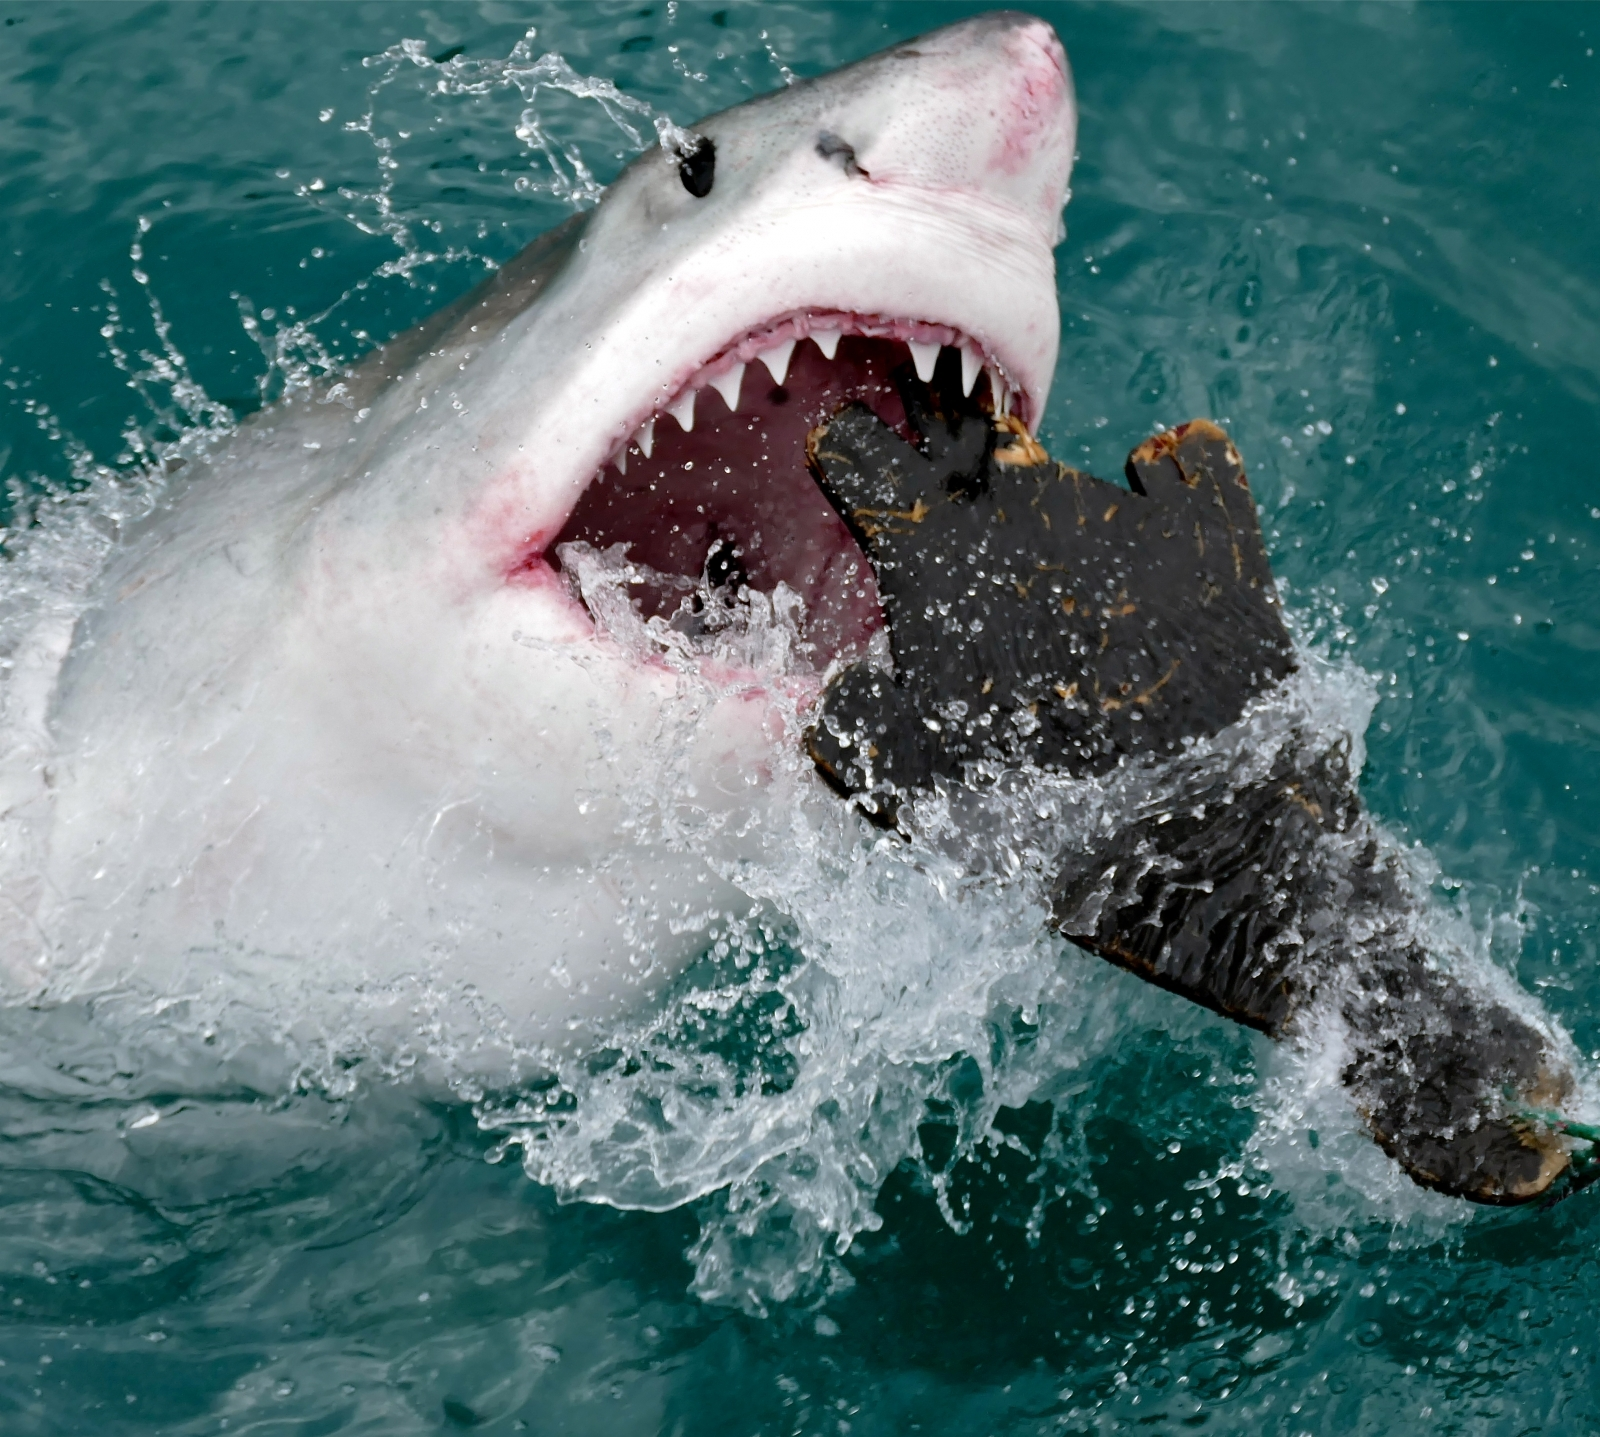 A new kind of drum line is keeping sharks away from popular beaches and protecting swimmers